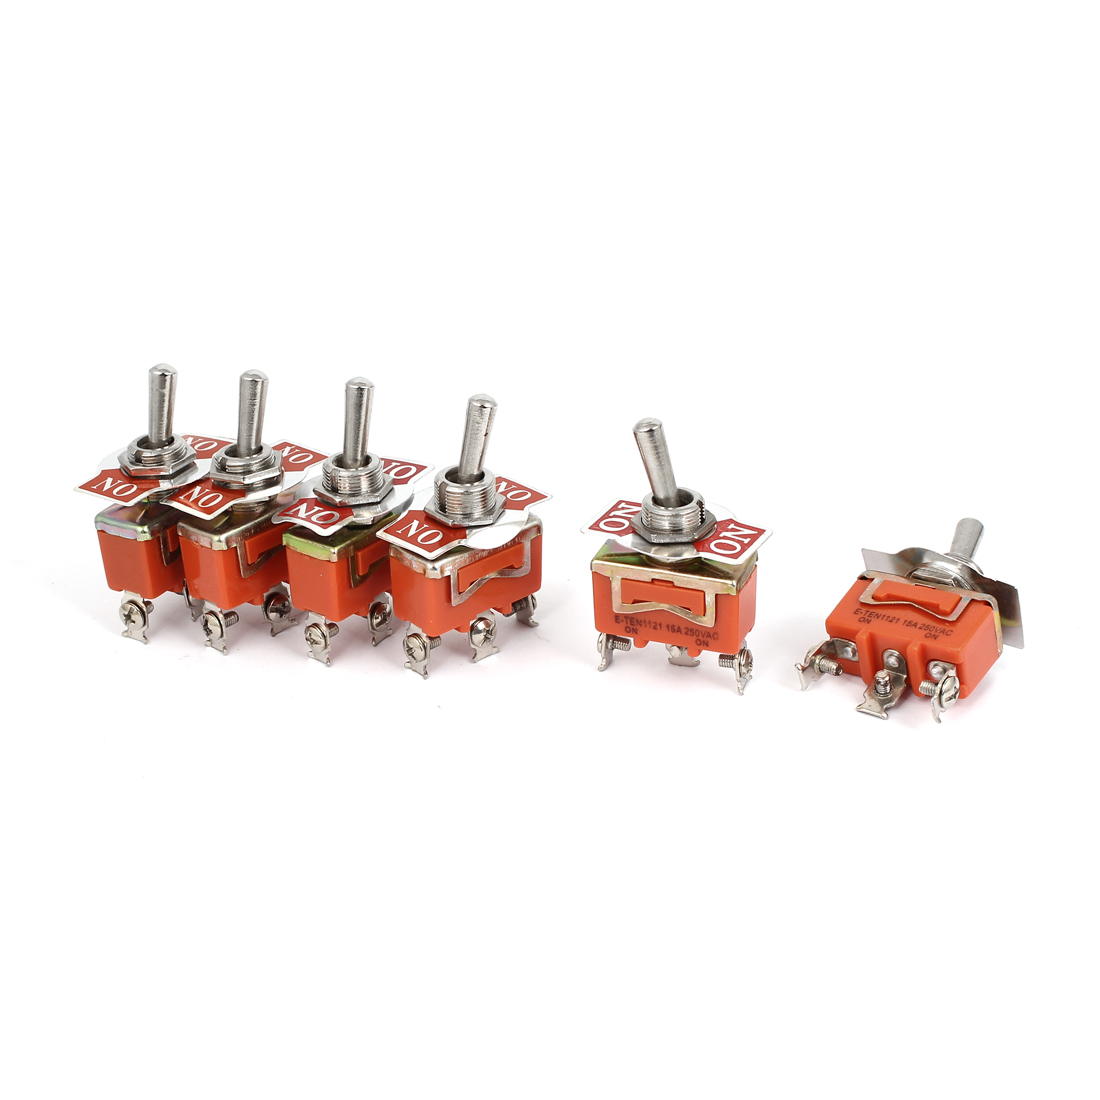 5 Pcs TEN1121 AC250V 15A SPDT ON-ON 2 Position Latching Toggle Switch Orange